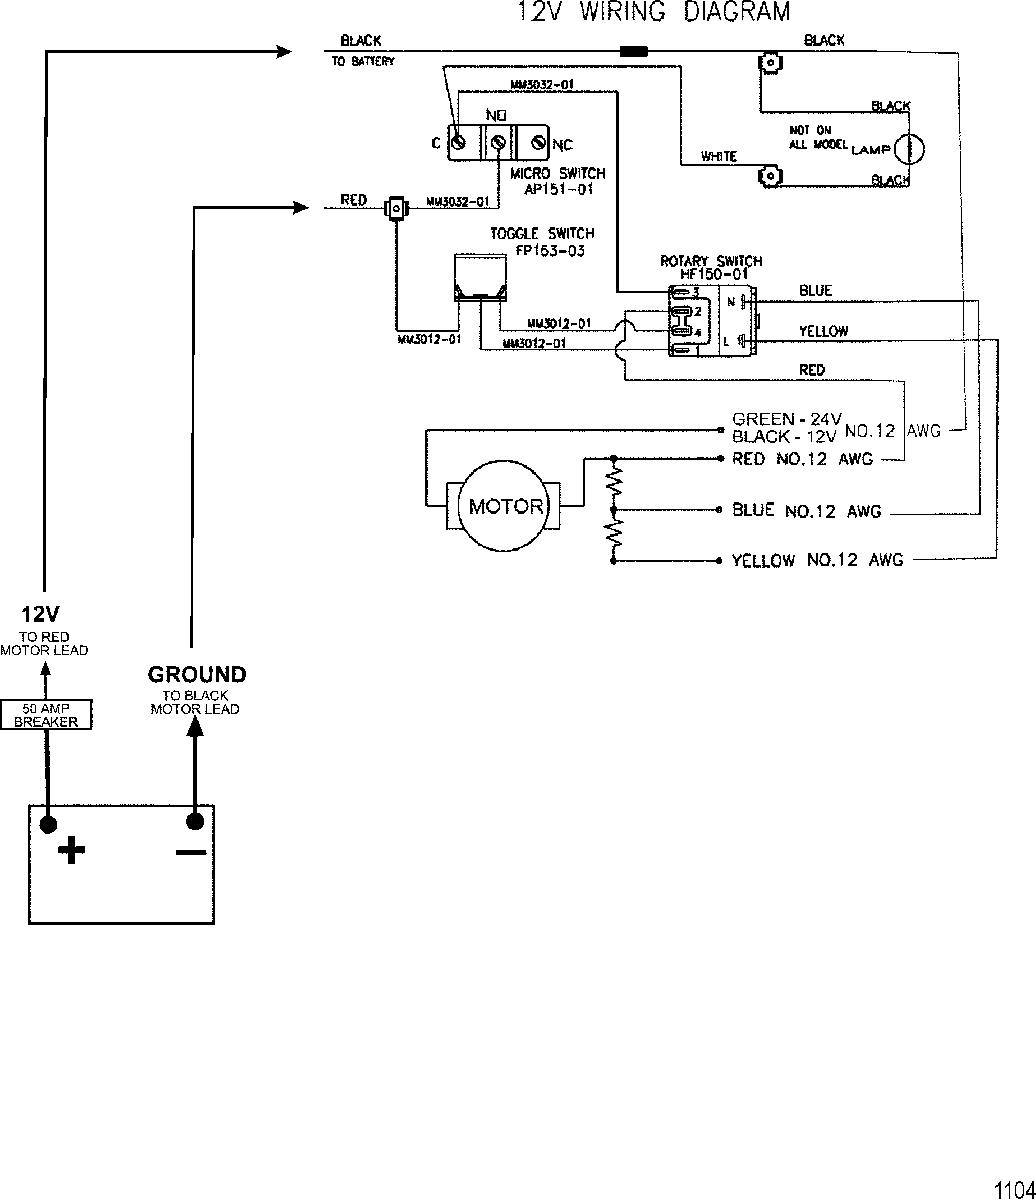 Motorguide Trolling Motor Wiring Diagram - 2003 Ford Excursion Fuse Panel  Diagram - toshiba.yenpancane.jeanjaures37.fr | Motorguide 36 Volt Wiring Diagram |  | Wiring Diagram Resource